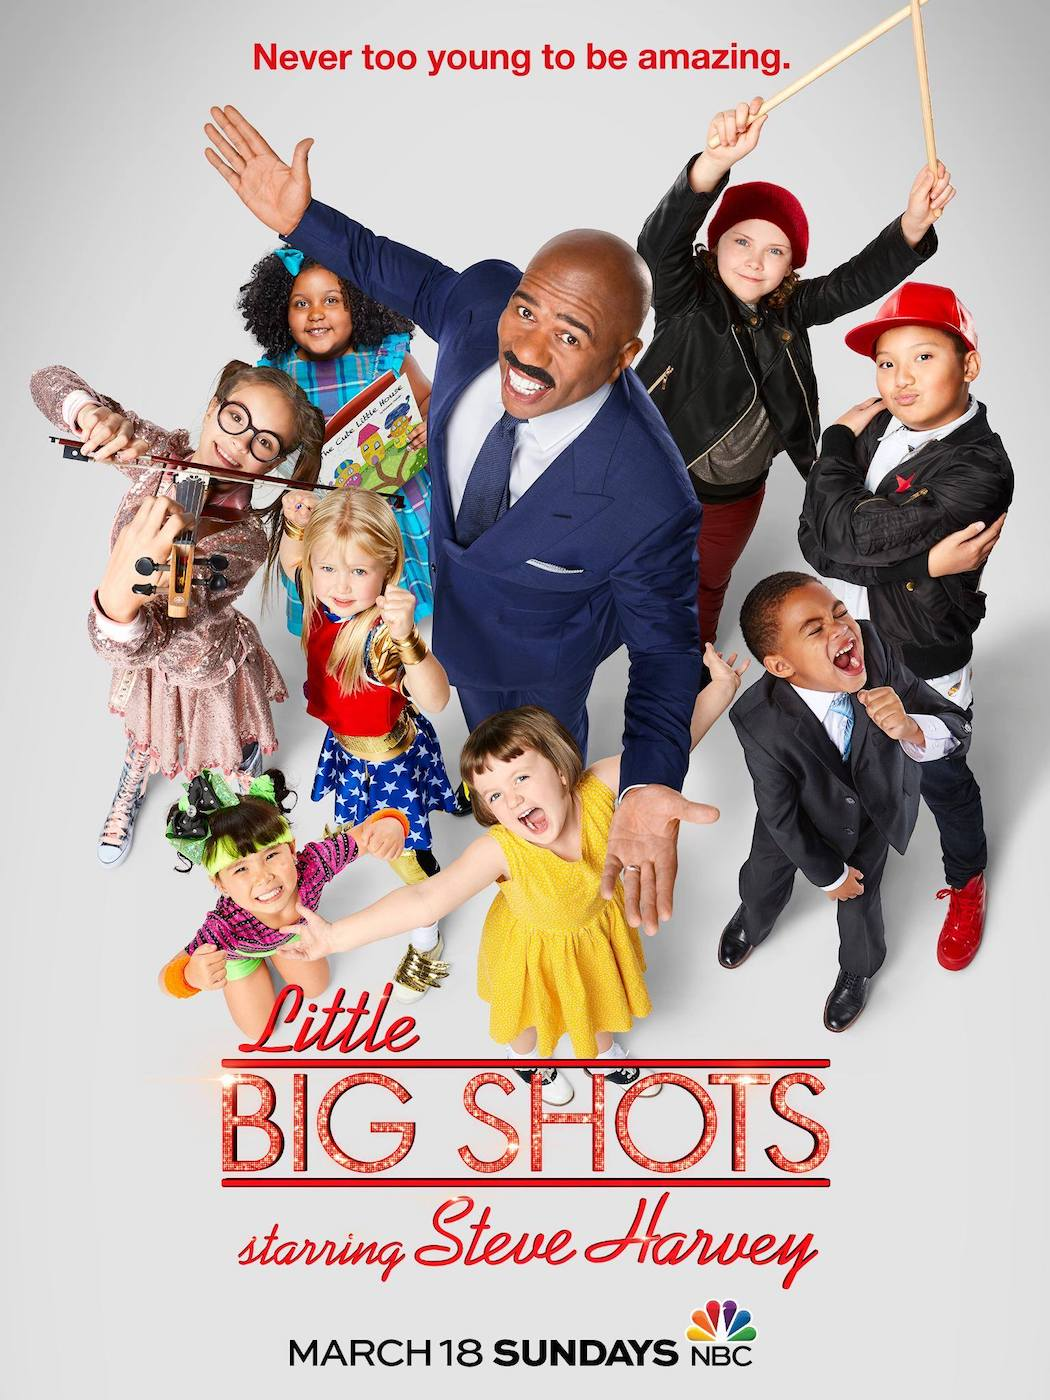 LITTLE BIG SHOTS PROMO_MILANA ROCKS copy.jpg